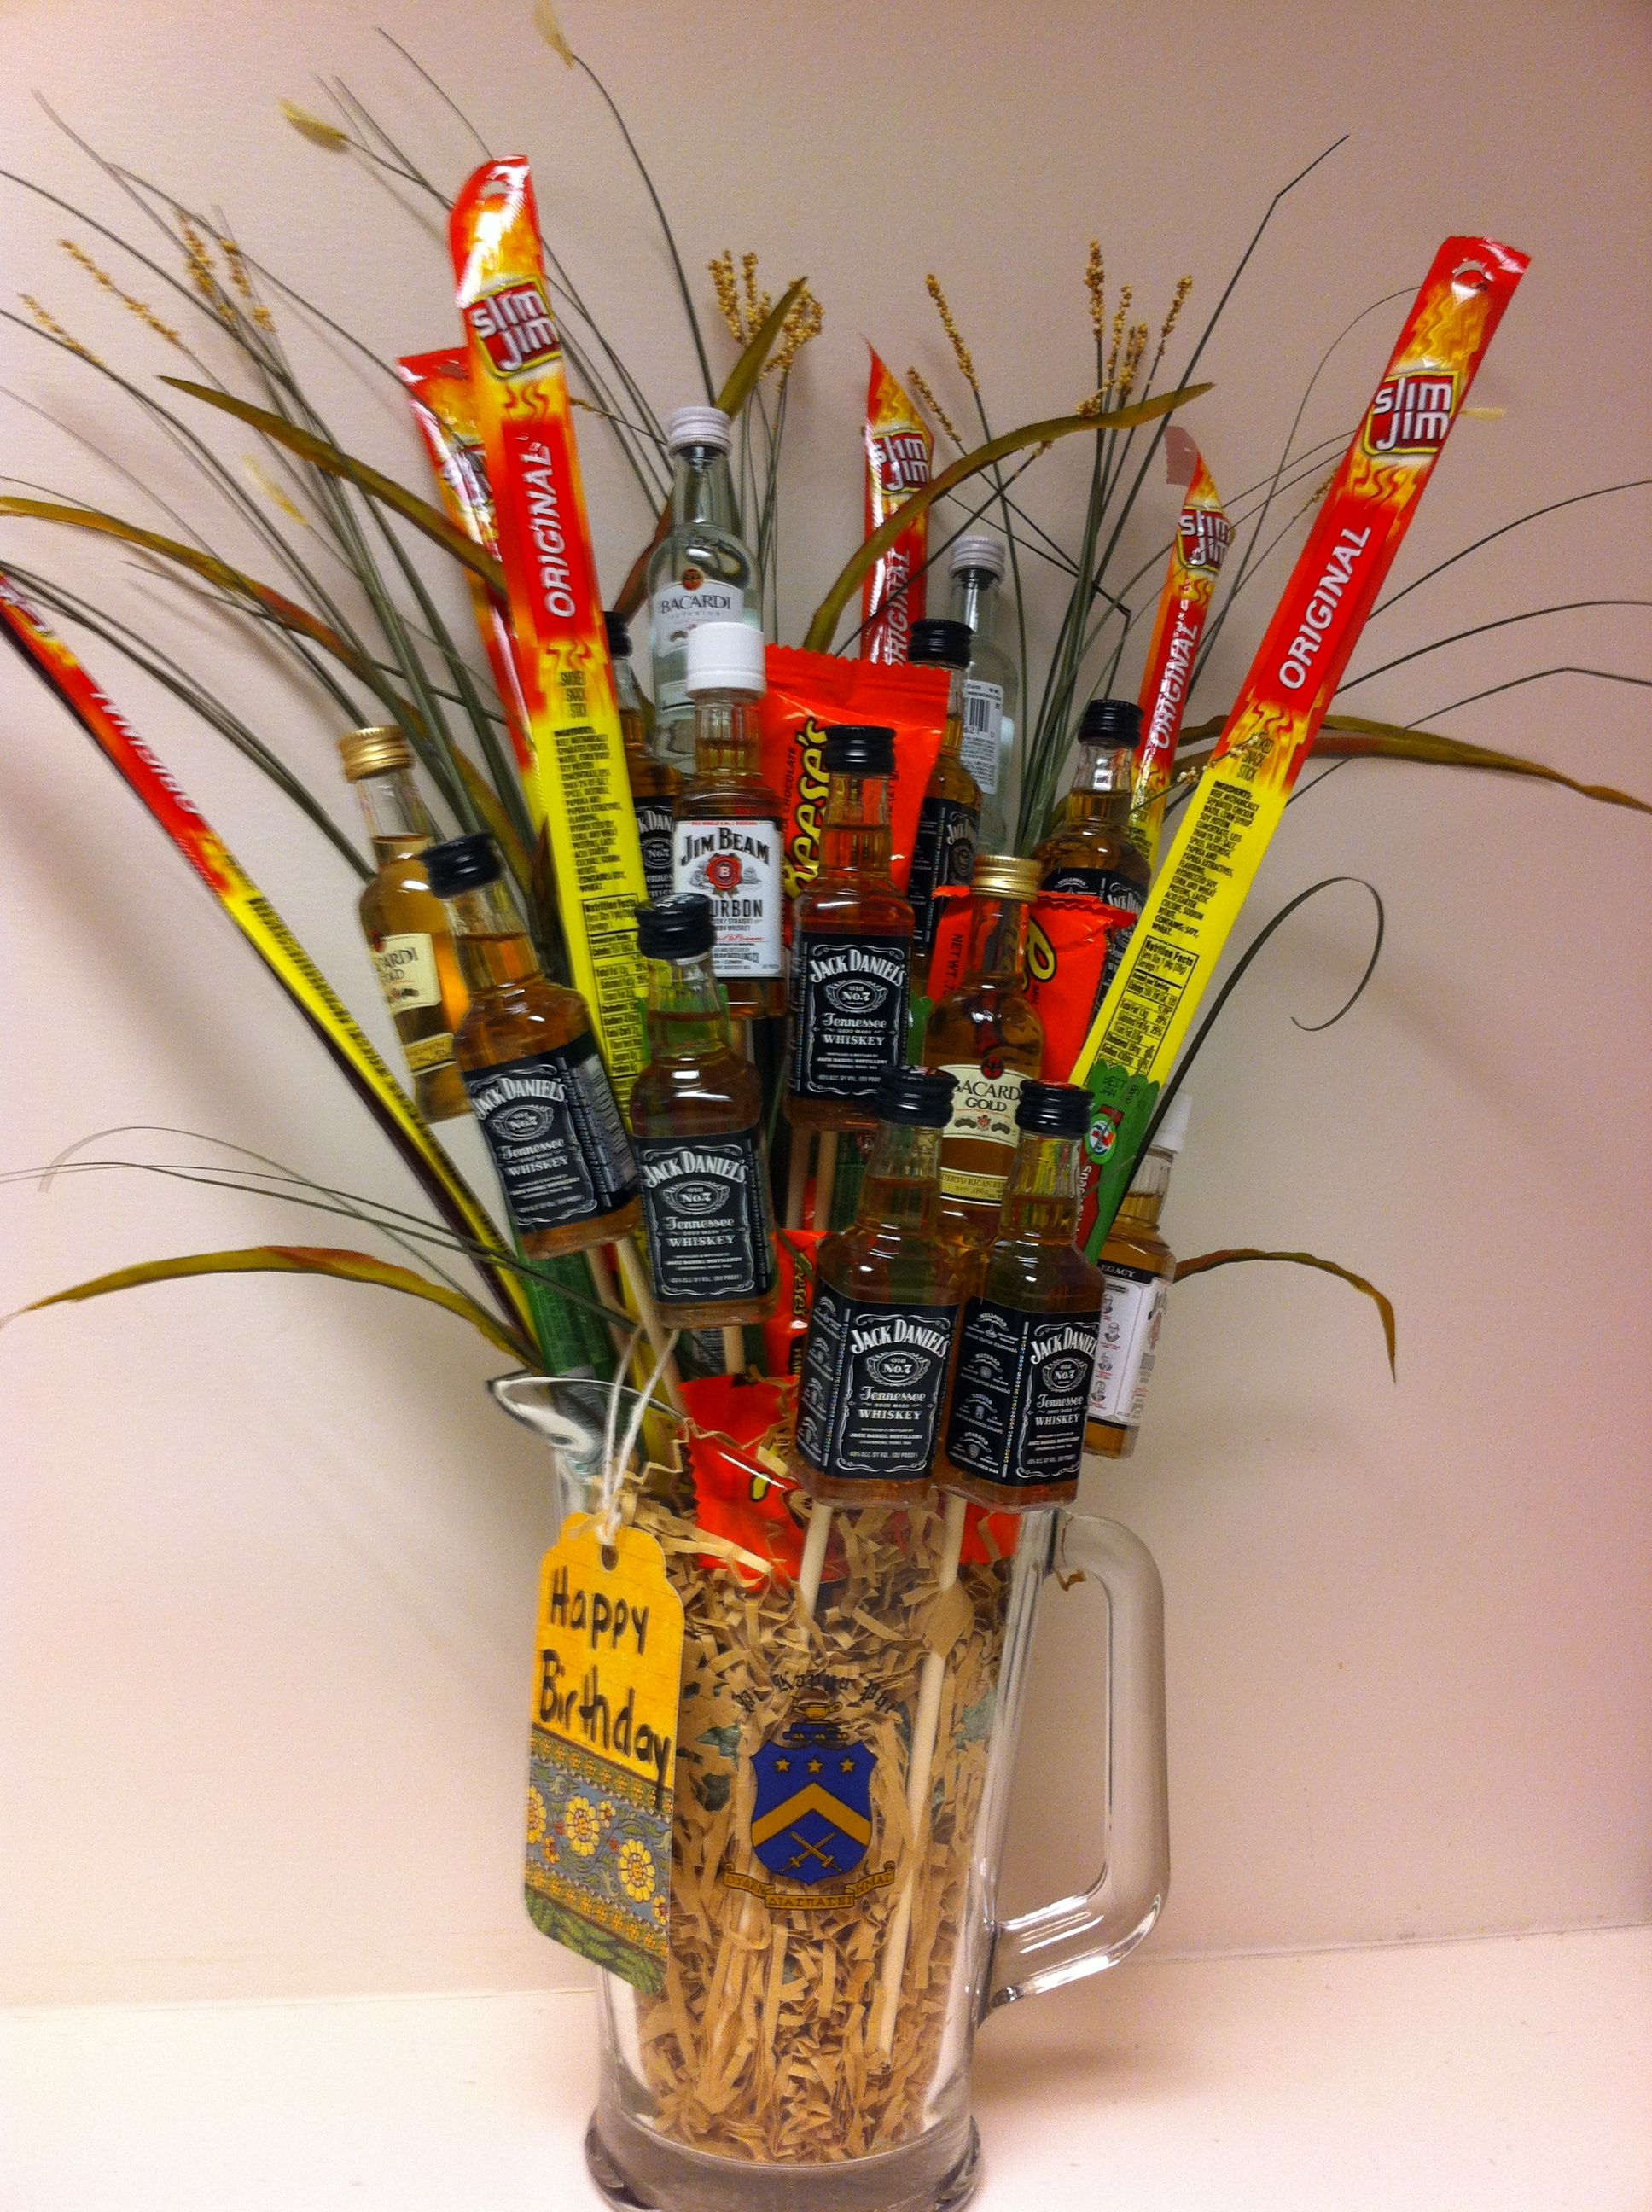 liquor bouquet this years valentines gift for sam i love making manly gifts - Manly Valentine Gifts